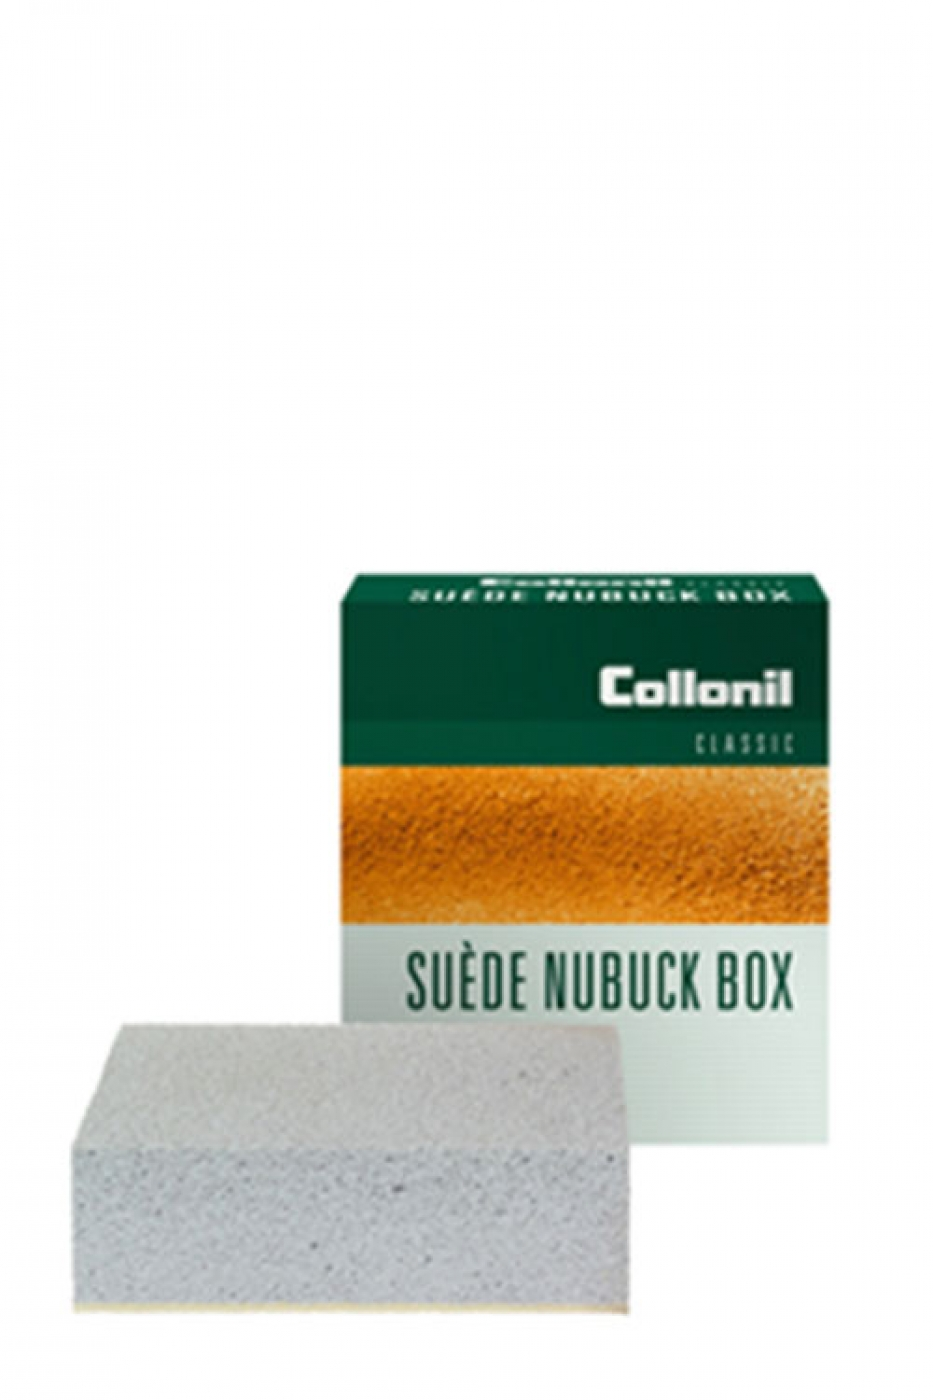 Wolky Shoes Suede + nubuck box Suede +